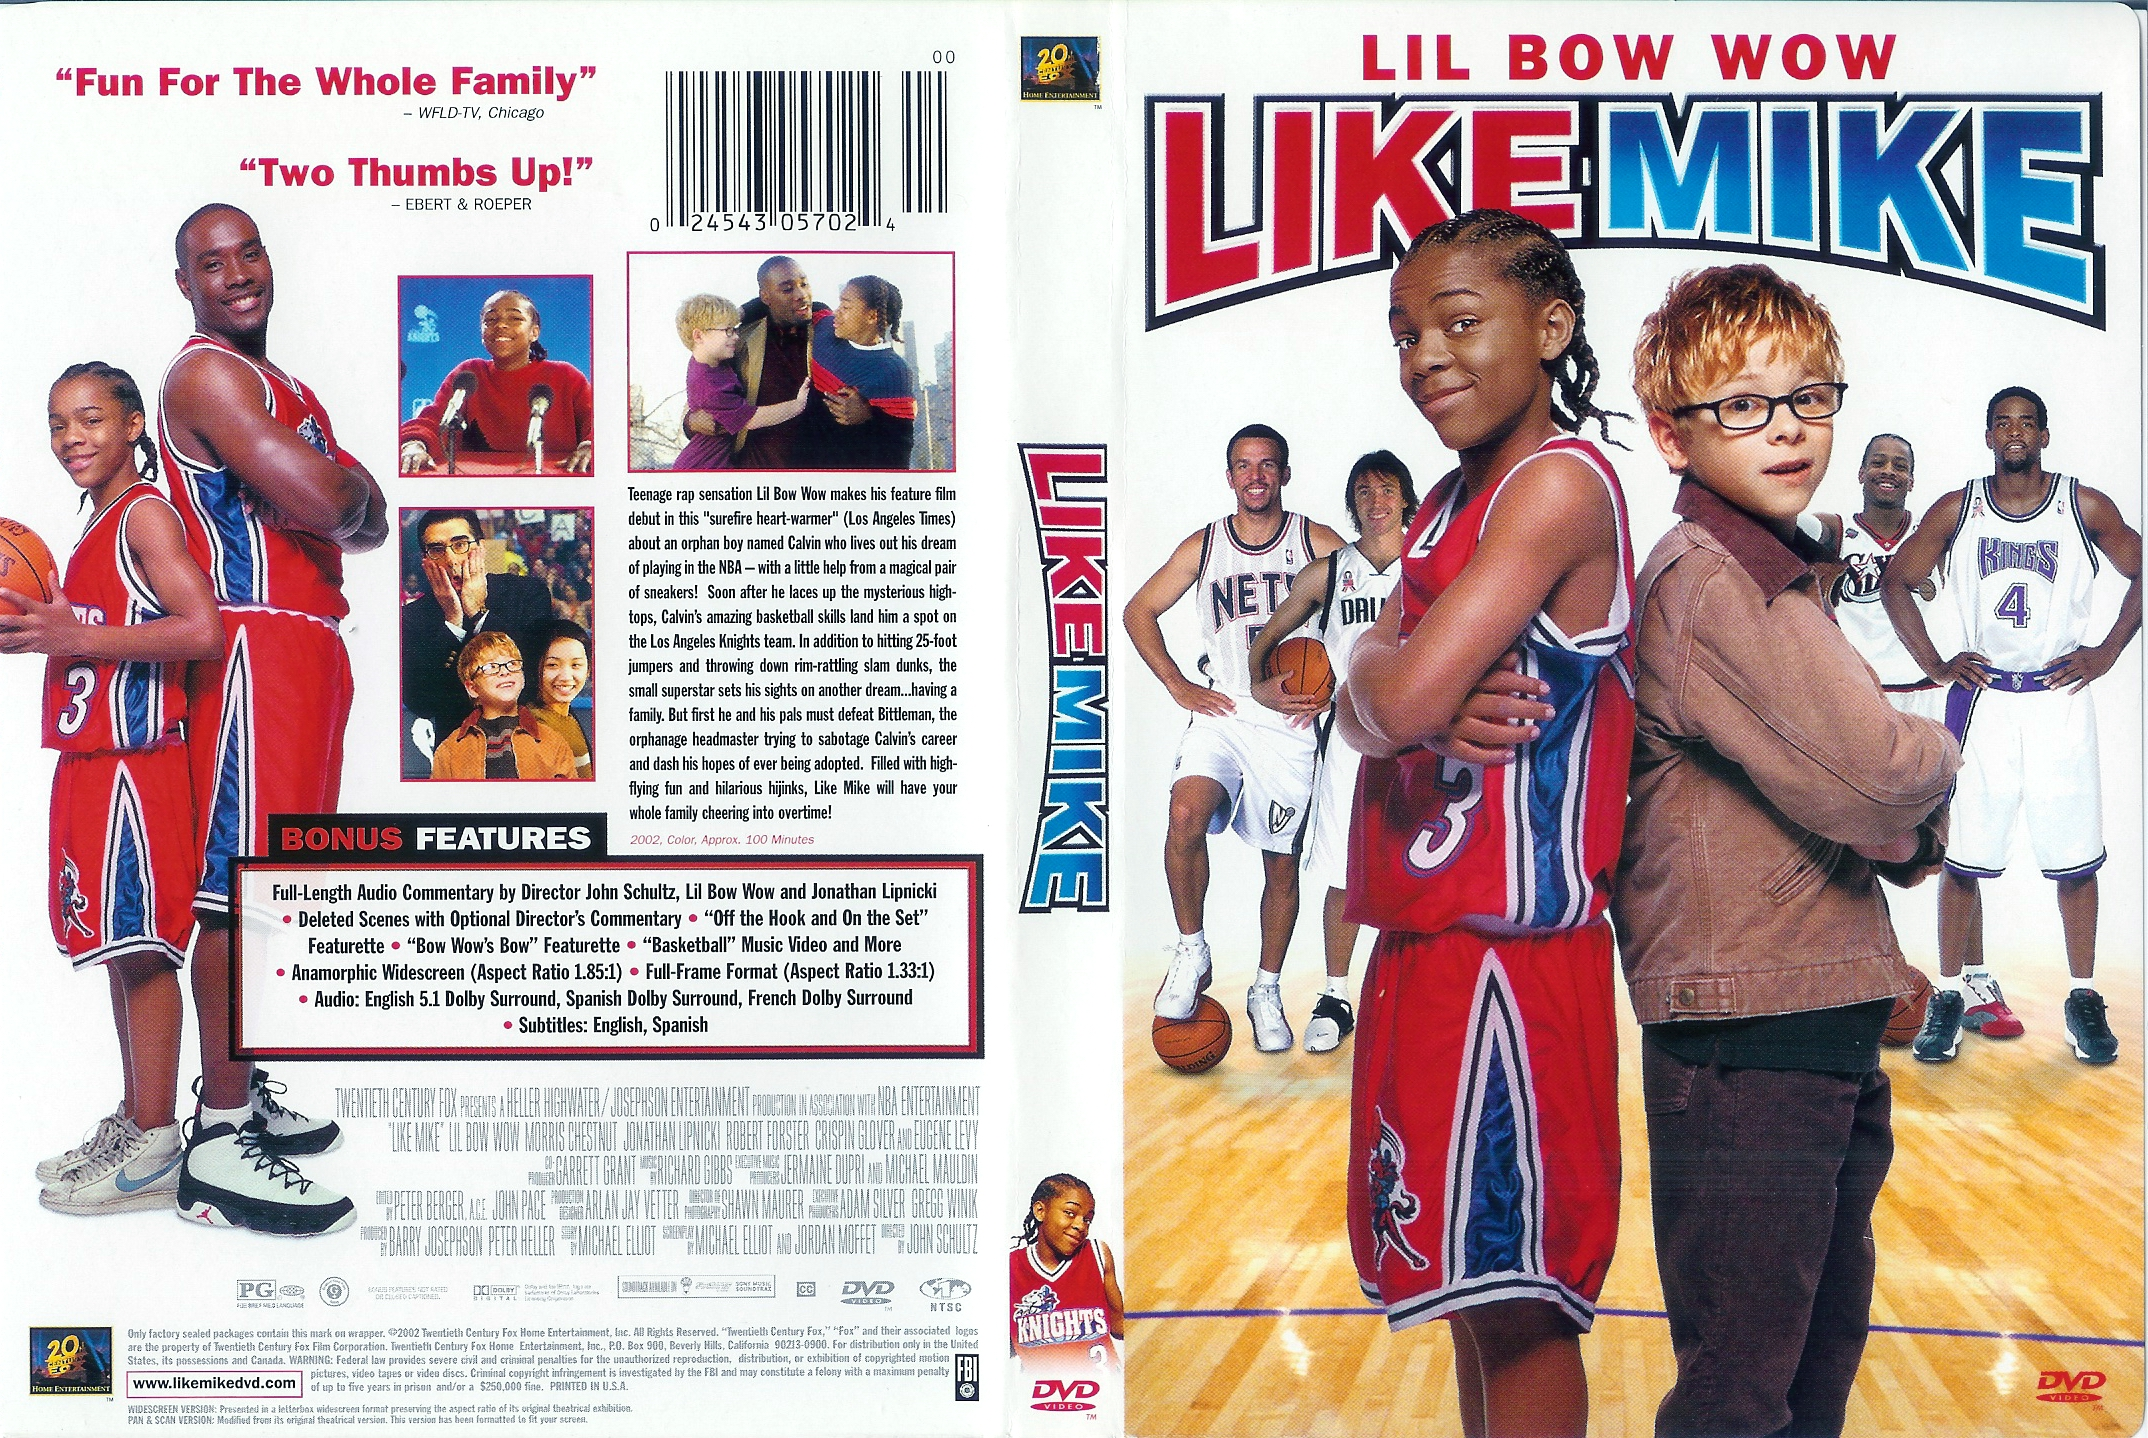 All about Like Mike 2002 Imdb - kidskunst.info 6a8a7d5b2